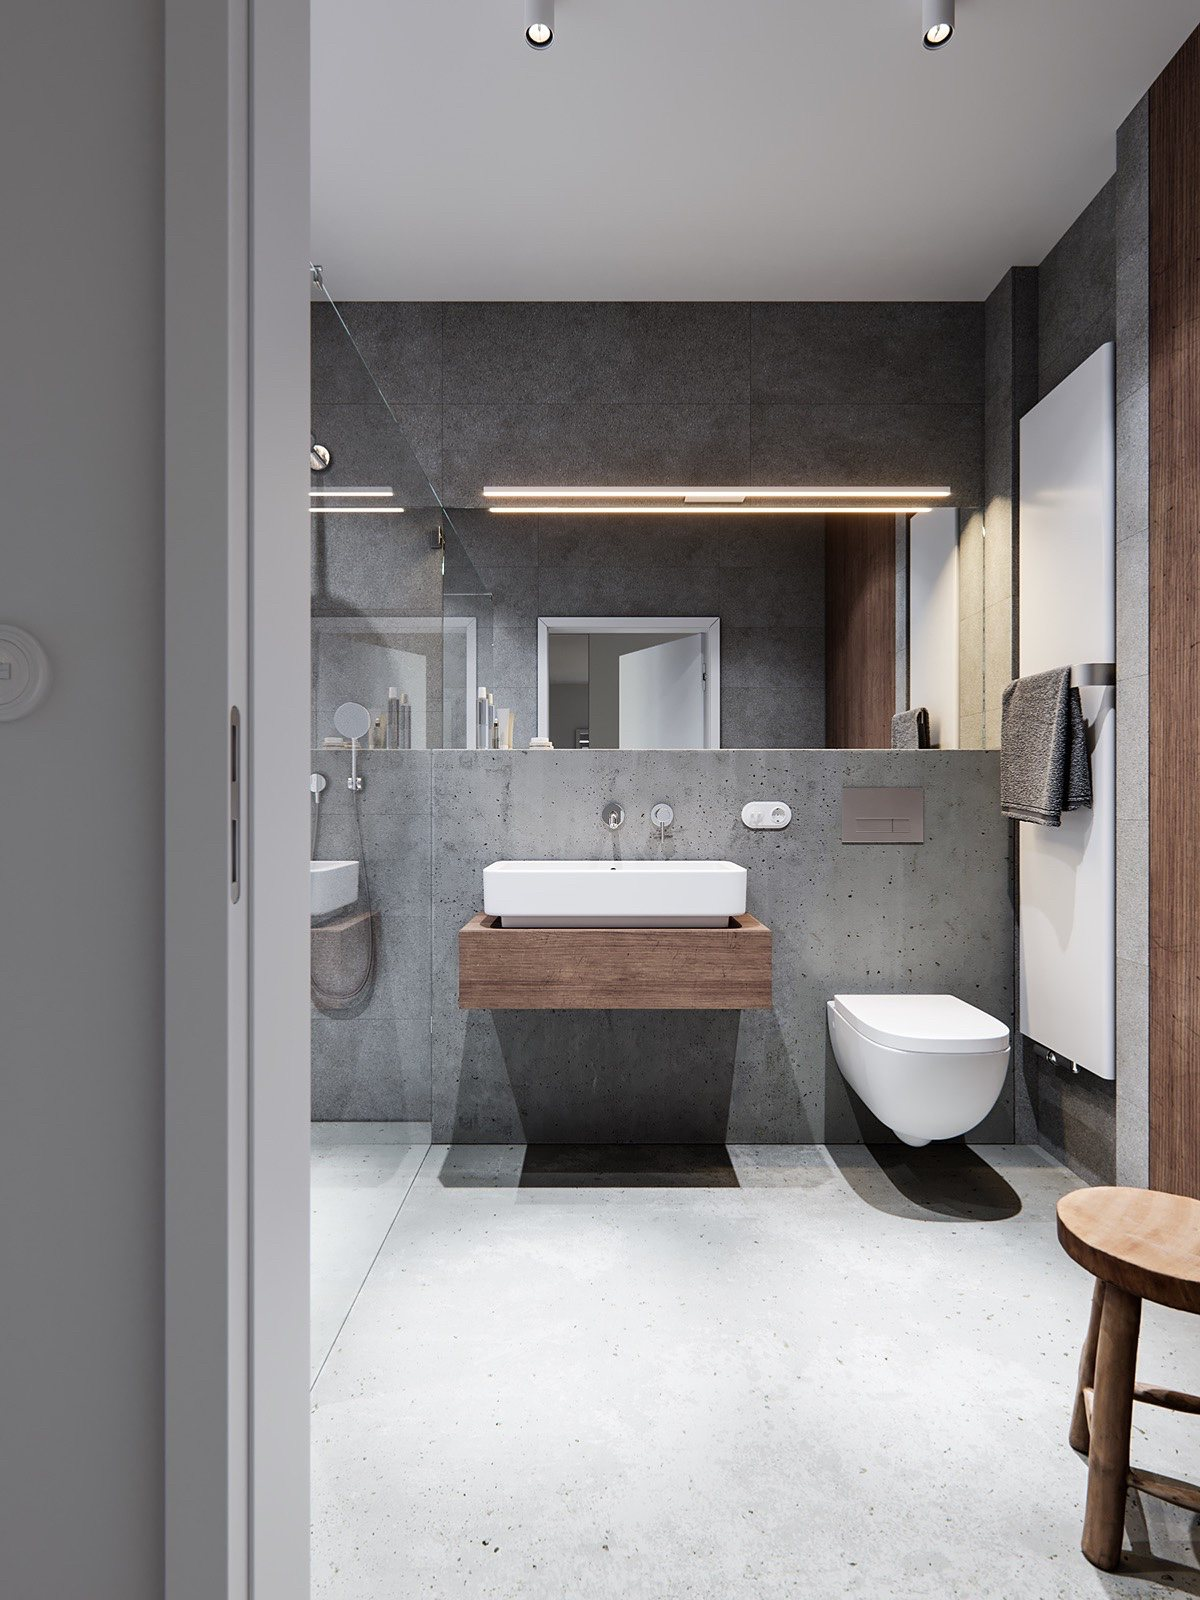 Wood Bathroom Decorating Ideas ~ Trendy bathroom designs combined with modern and geometric